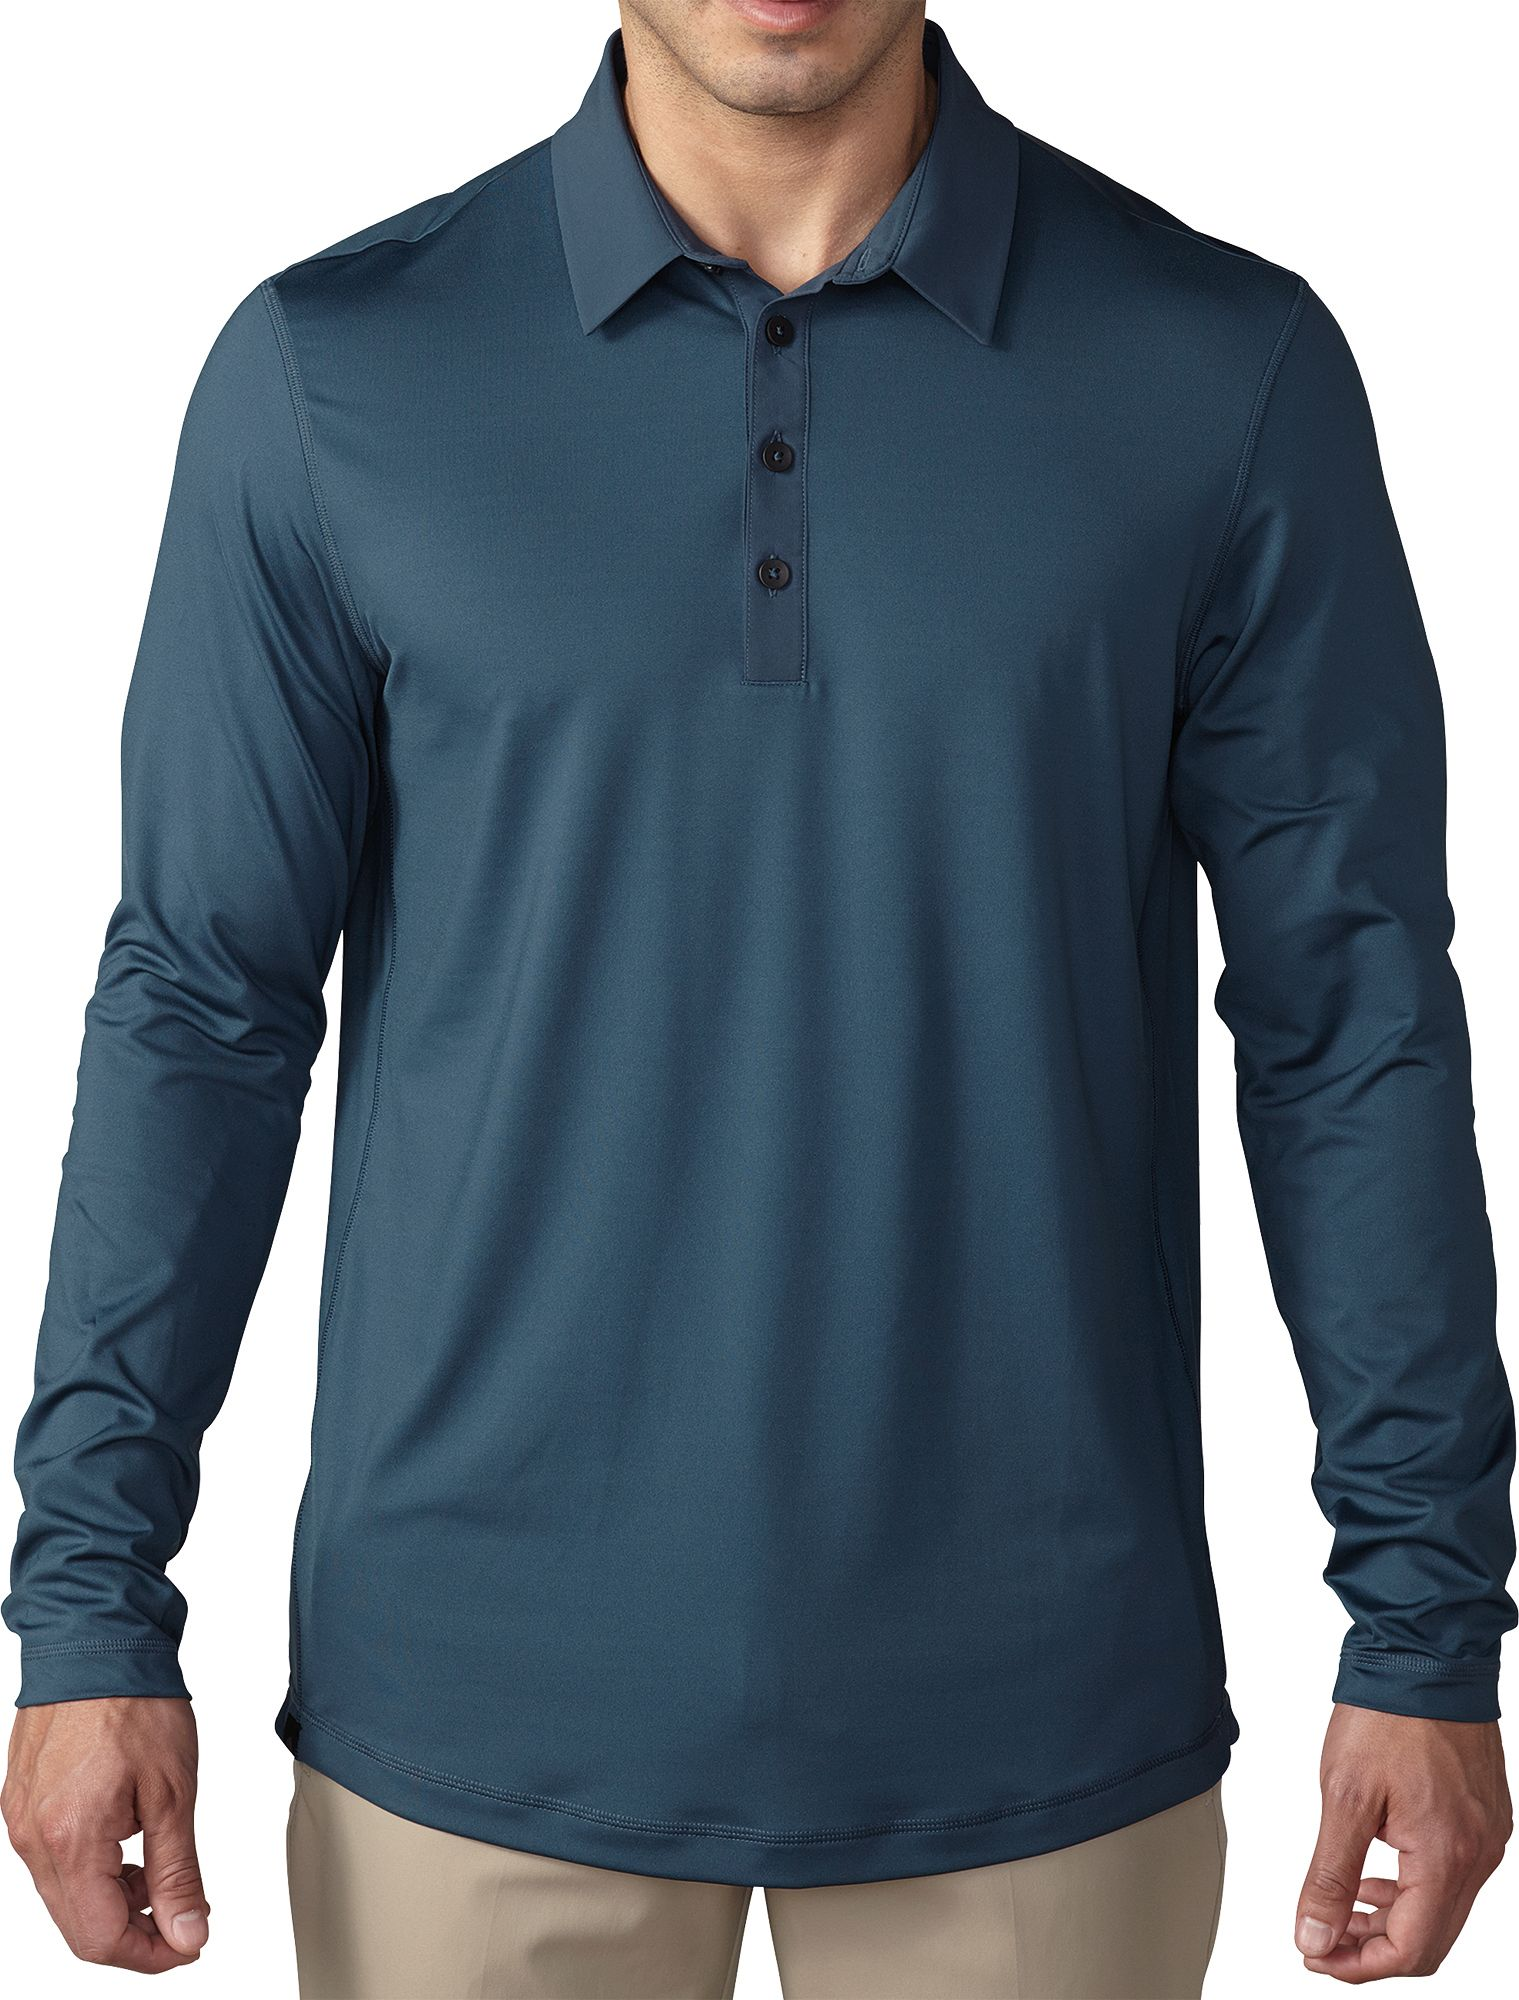 Shop for Men's Long Sleeve Straight Collar Work Shirt on Lands End Business Outfitters. Add your company logo using our customization tool!